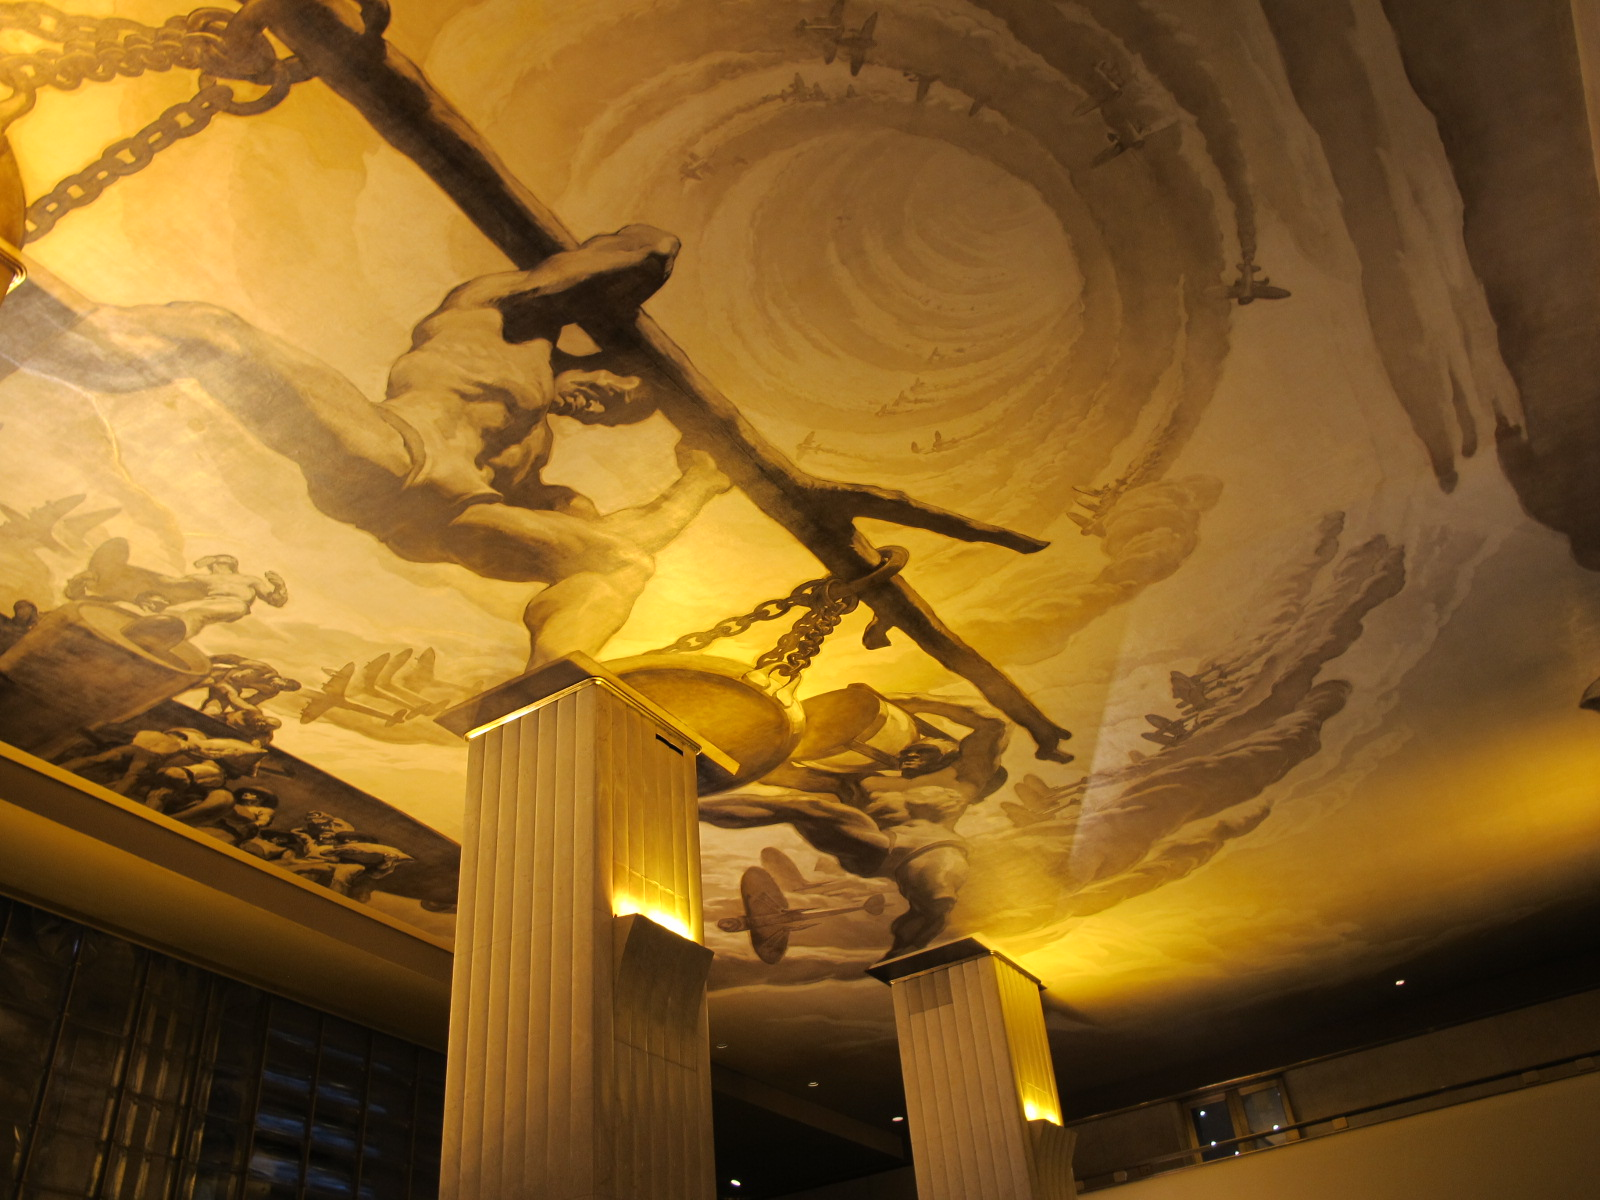 Time -  by Jose Maria Sert. A dramatic mural on the ceiling of 30 Rockefeller Center depicts a giant Titan bracing his weight between two columns that symbolize the past and the future. Whether he is leaning towards the past or the future depends on your perspective as you move about the  lobby.